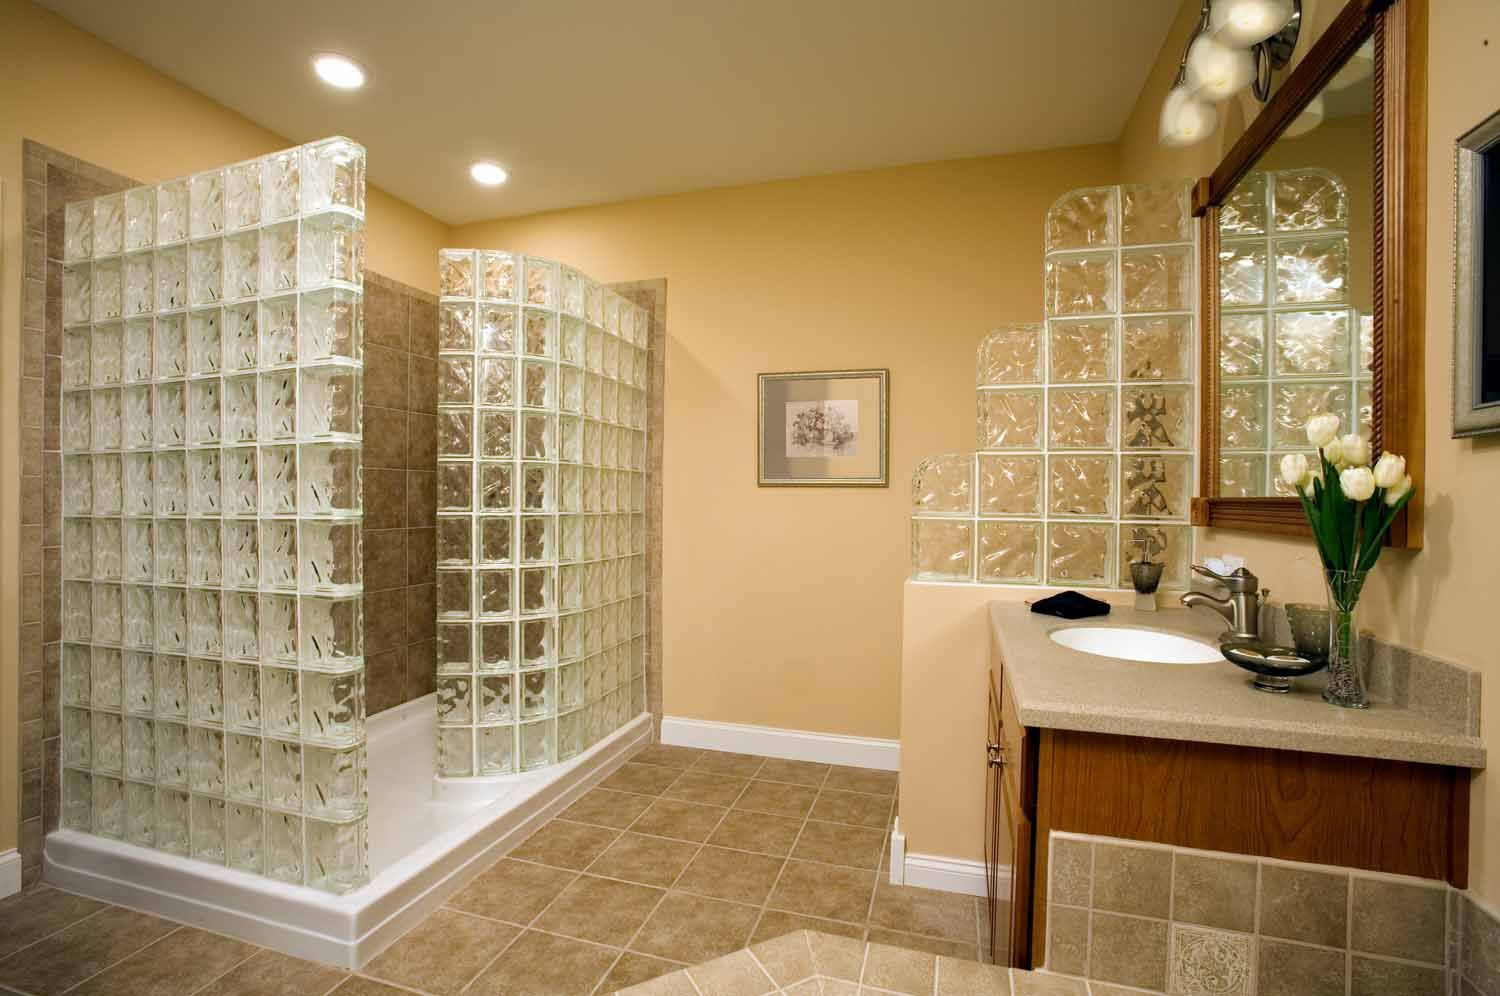 Restroom Ideas restroom ideas | home design ideas